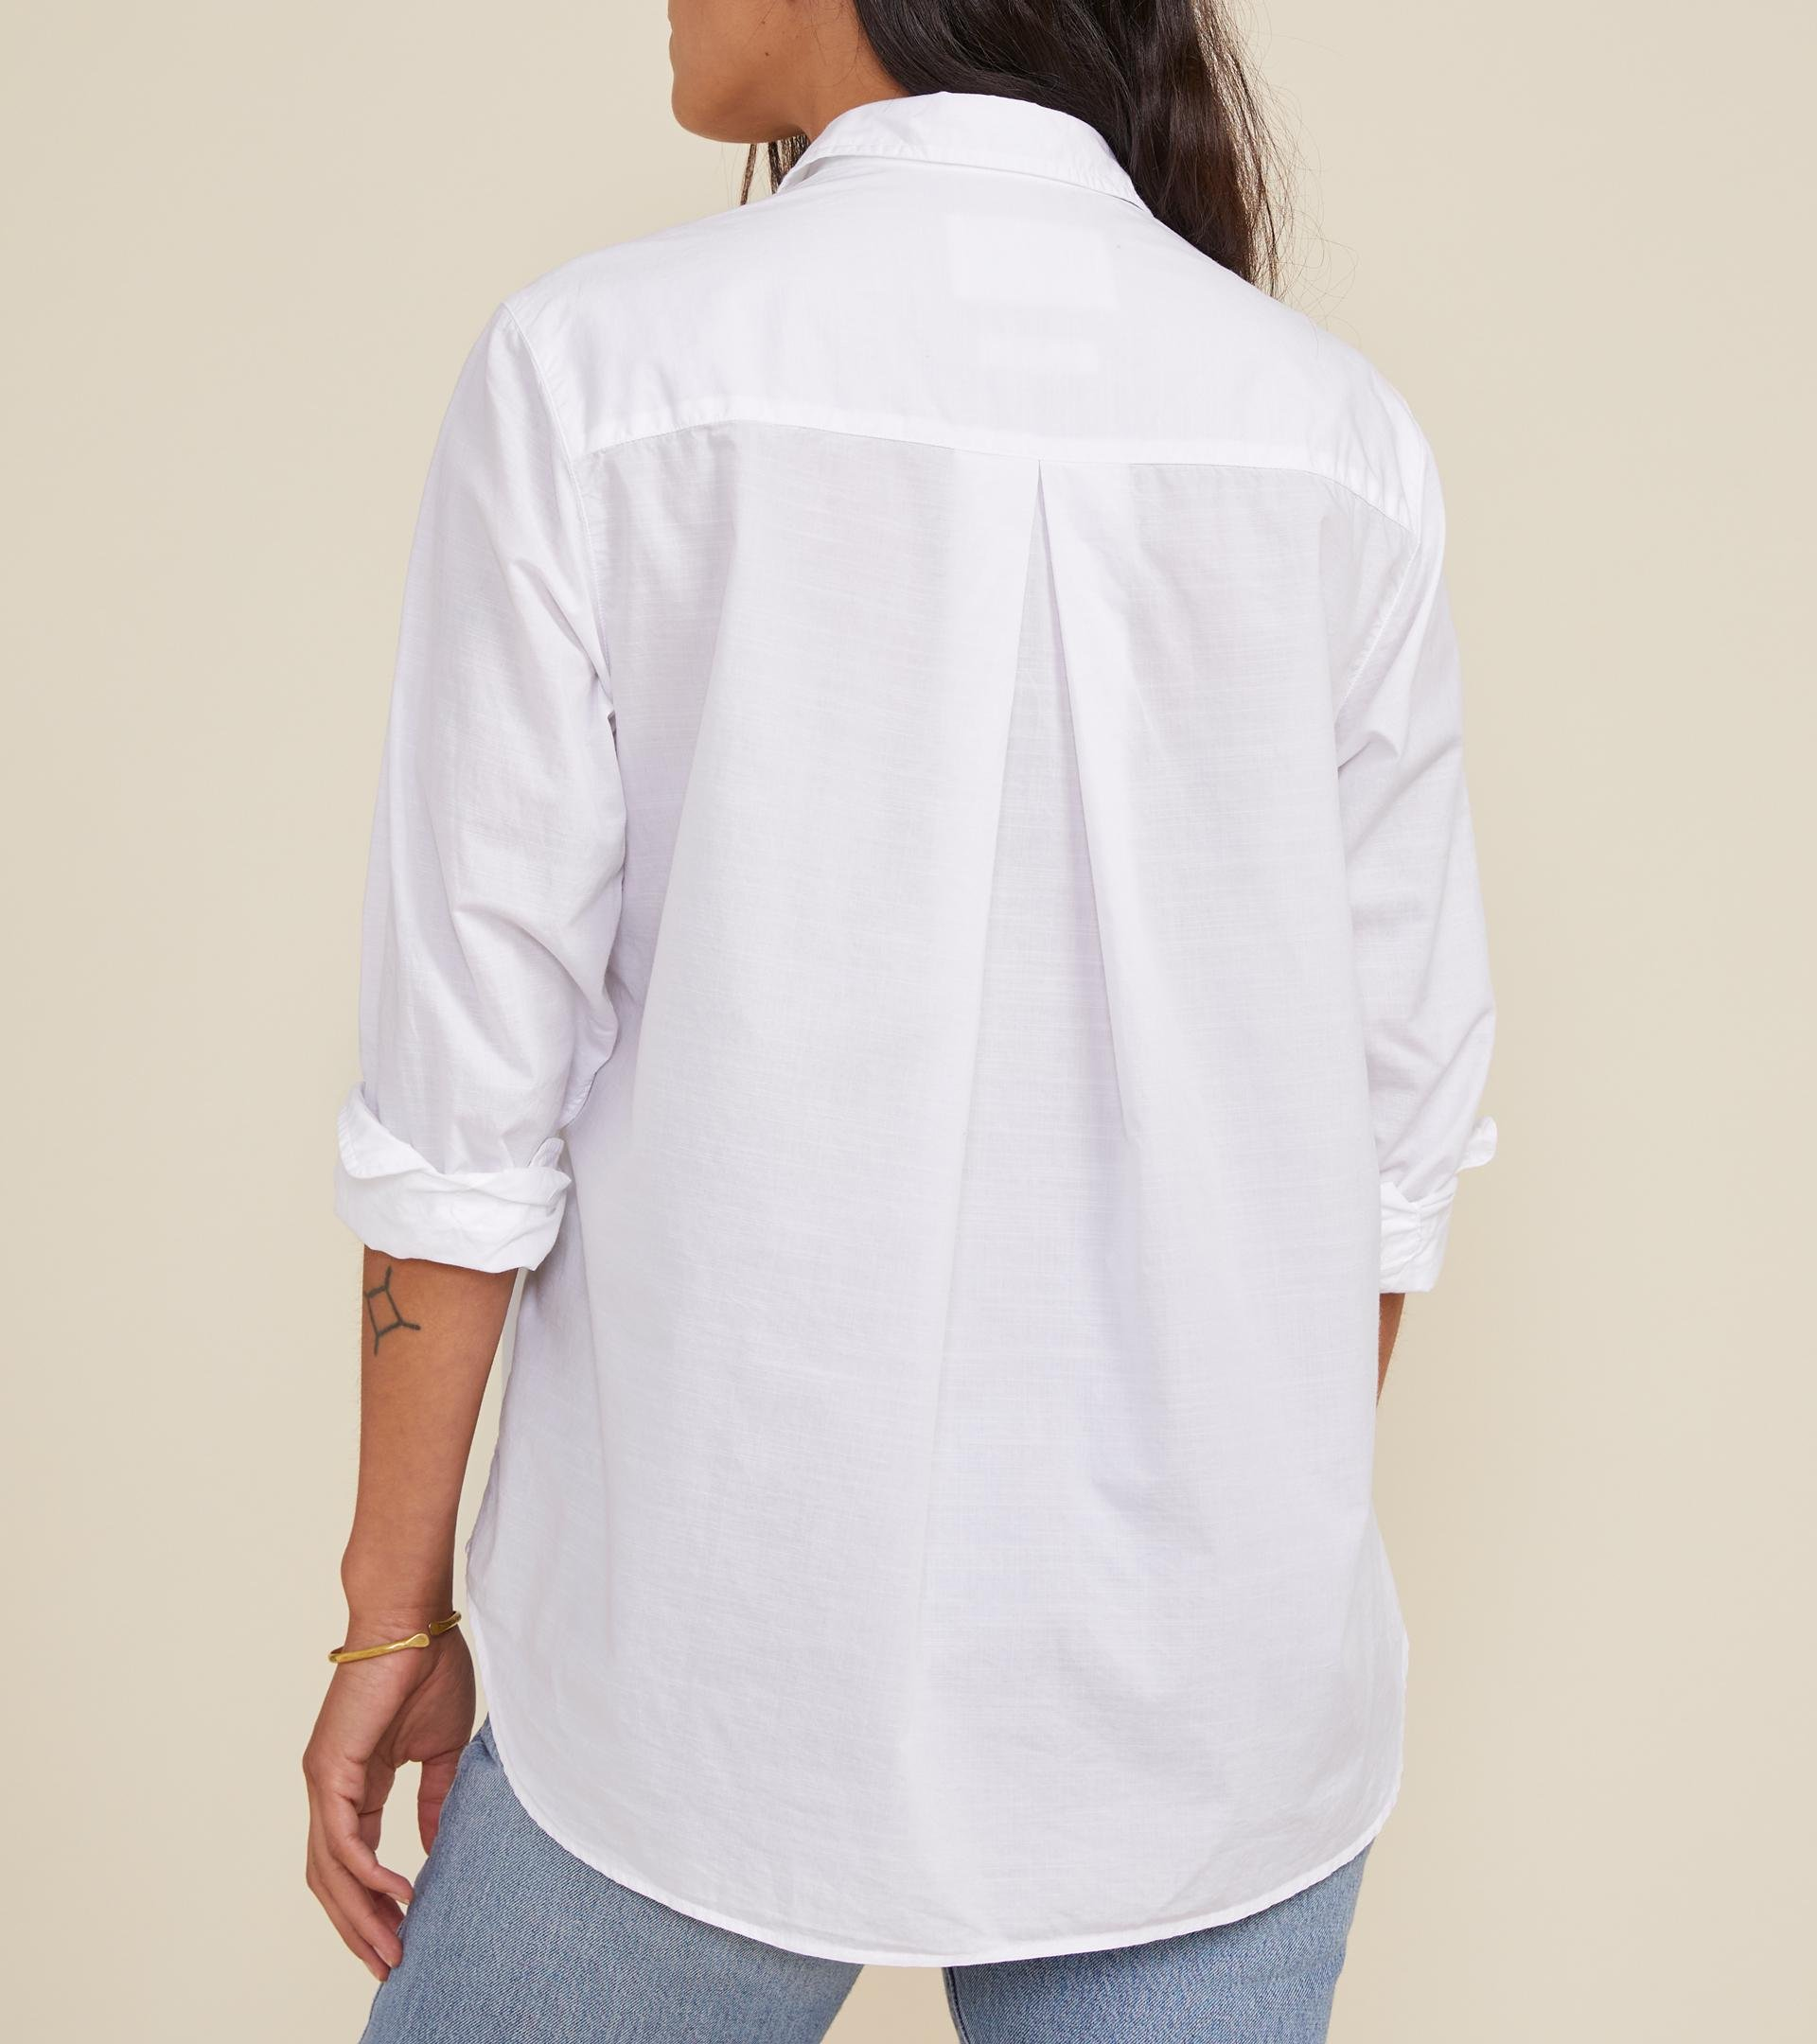 The Hero Classic White, Washed Cotton 1